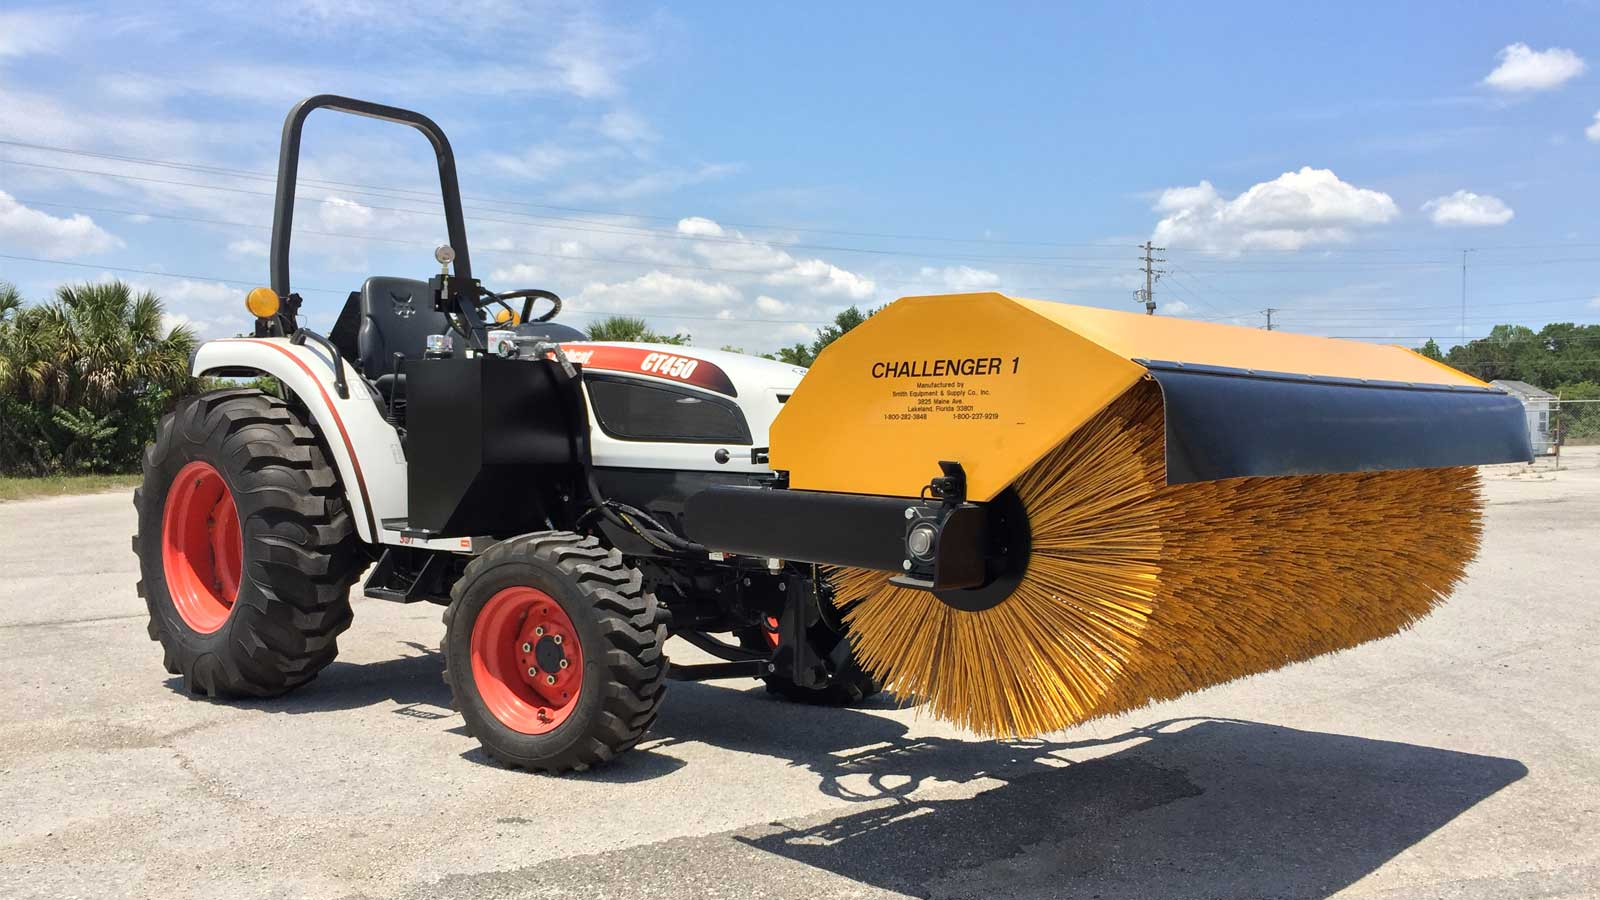 sweeper attachments challenger 1 smith equipment rh smith equipment com Bobcat Broom Attachment Bobcat Angle Broom Parts Diagram